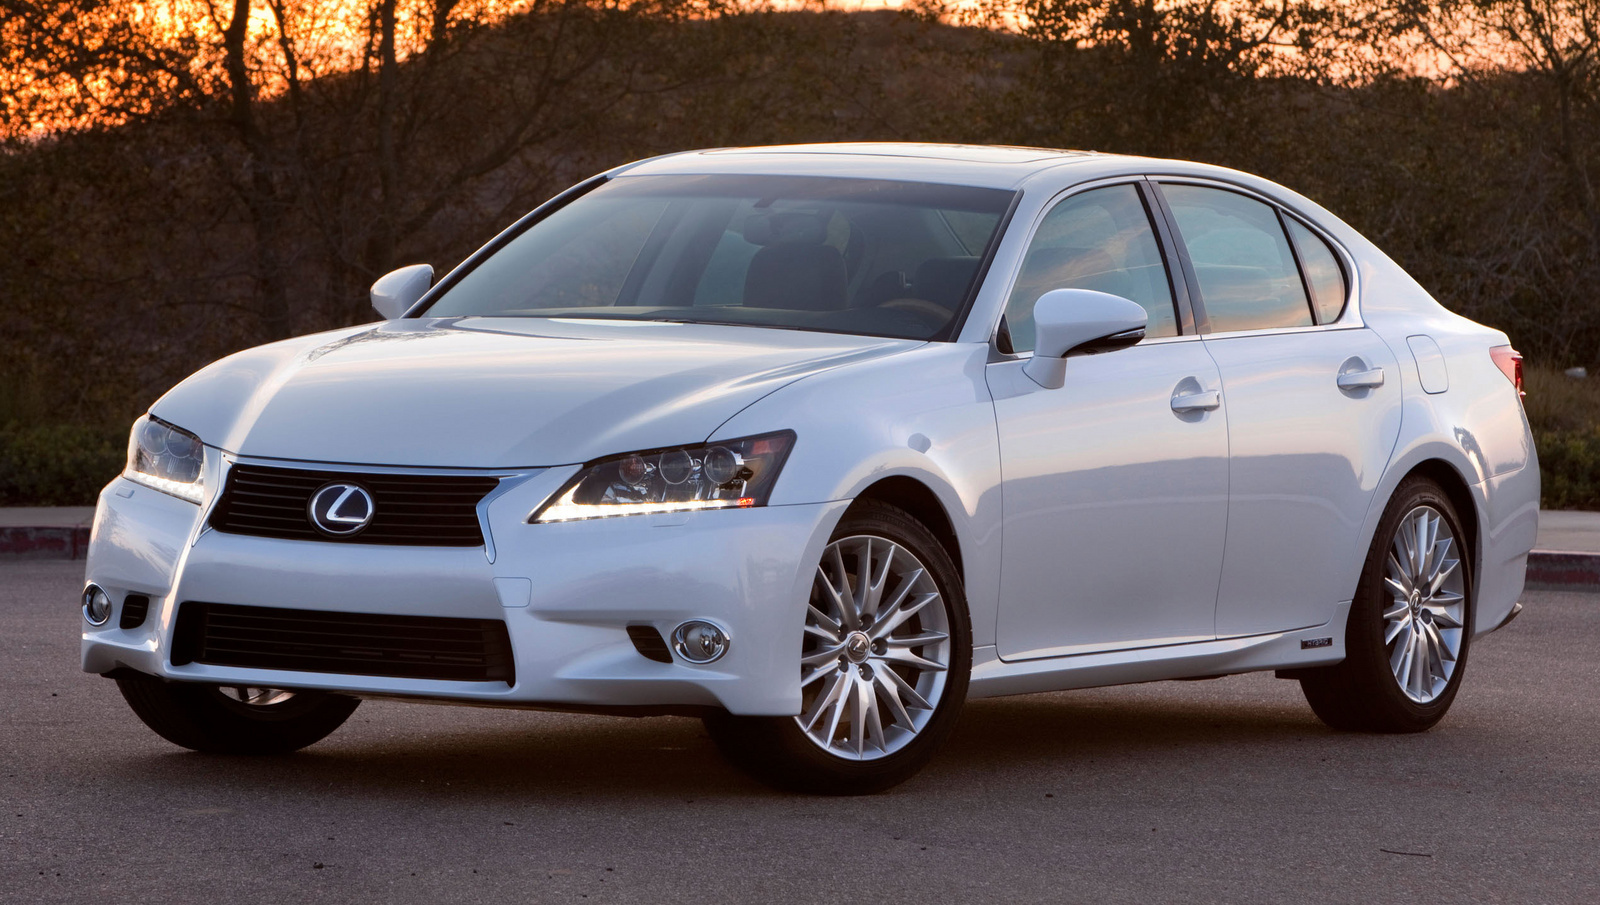 2014 lexus gs 450h overview cargurus. Black Bedroom Furniture Sets. Home Design Ideas